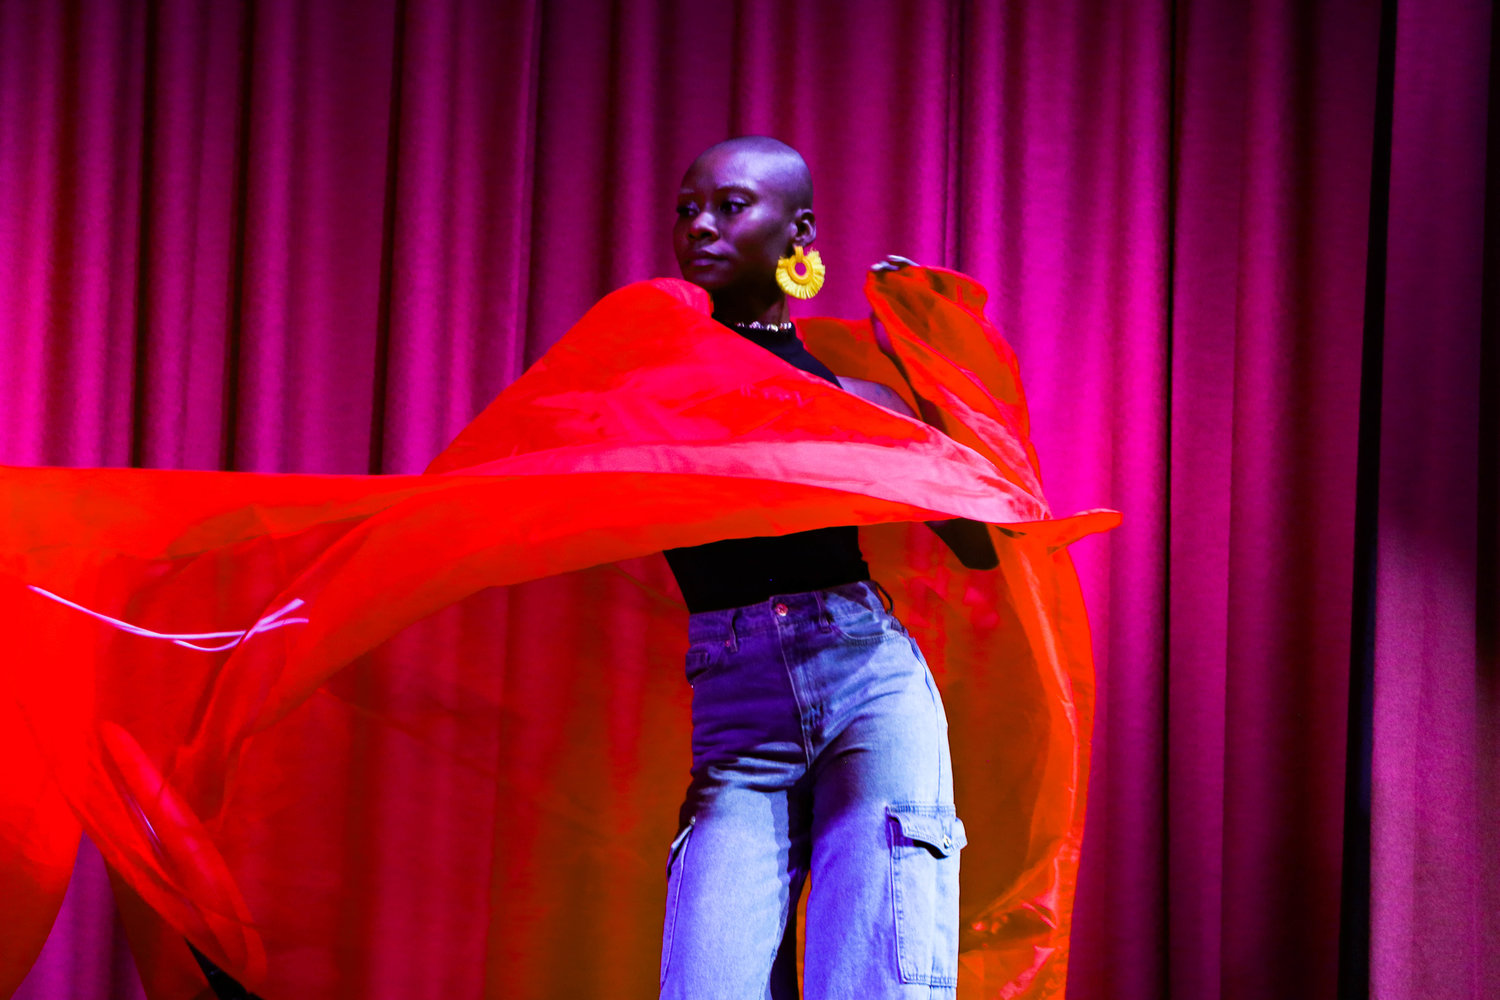 Jeaniqua McIntyre performed a dancing routine at the fashion show.